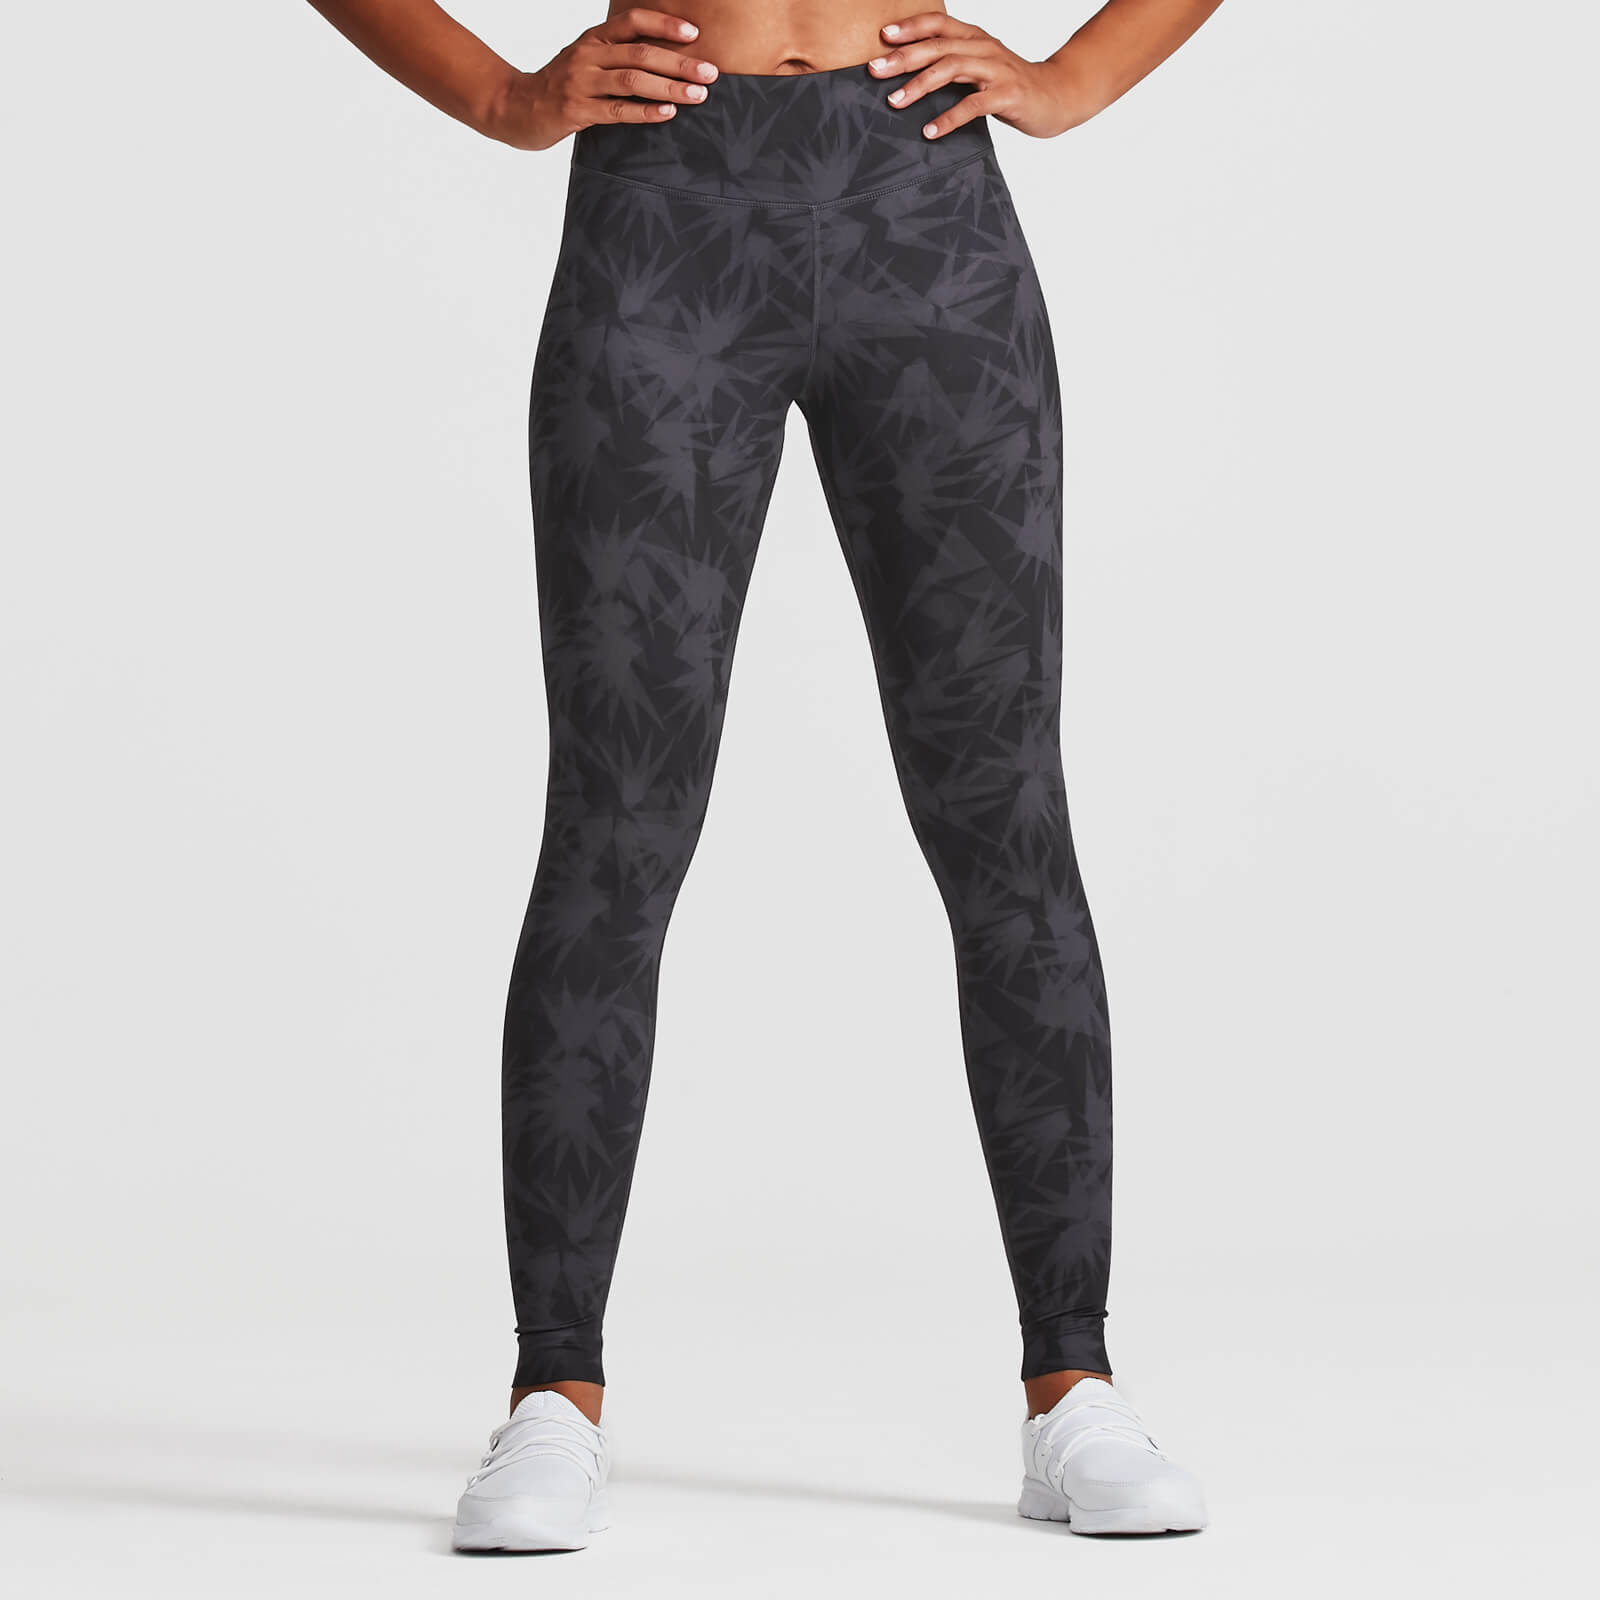 L - IdealFit Leggings - Stargaze Print